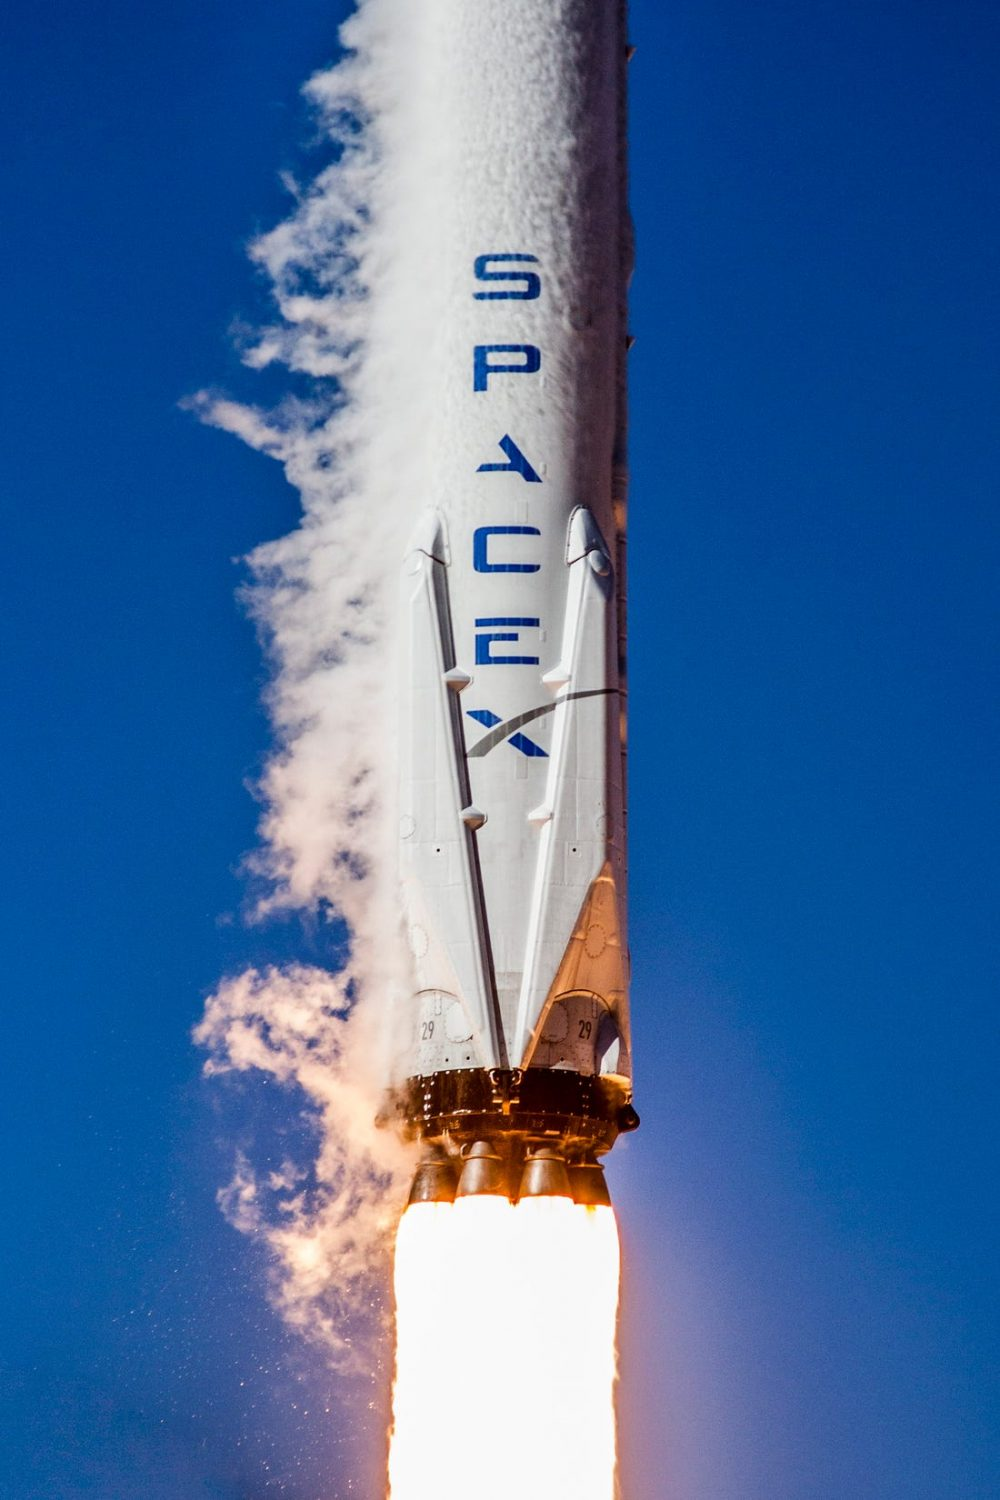 Hydra-310, SpaceX time capsule, will be launched to orbit featuring locally selected artwork